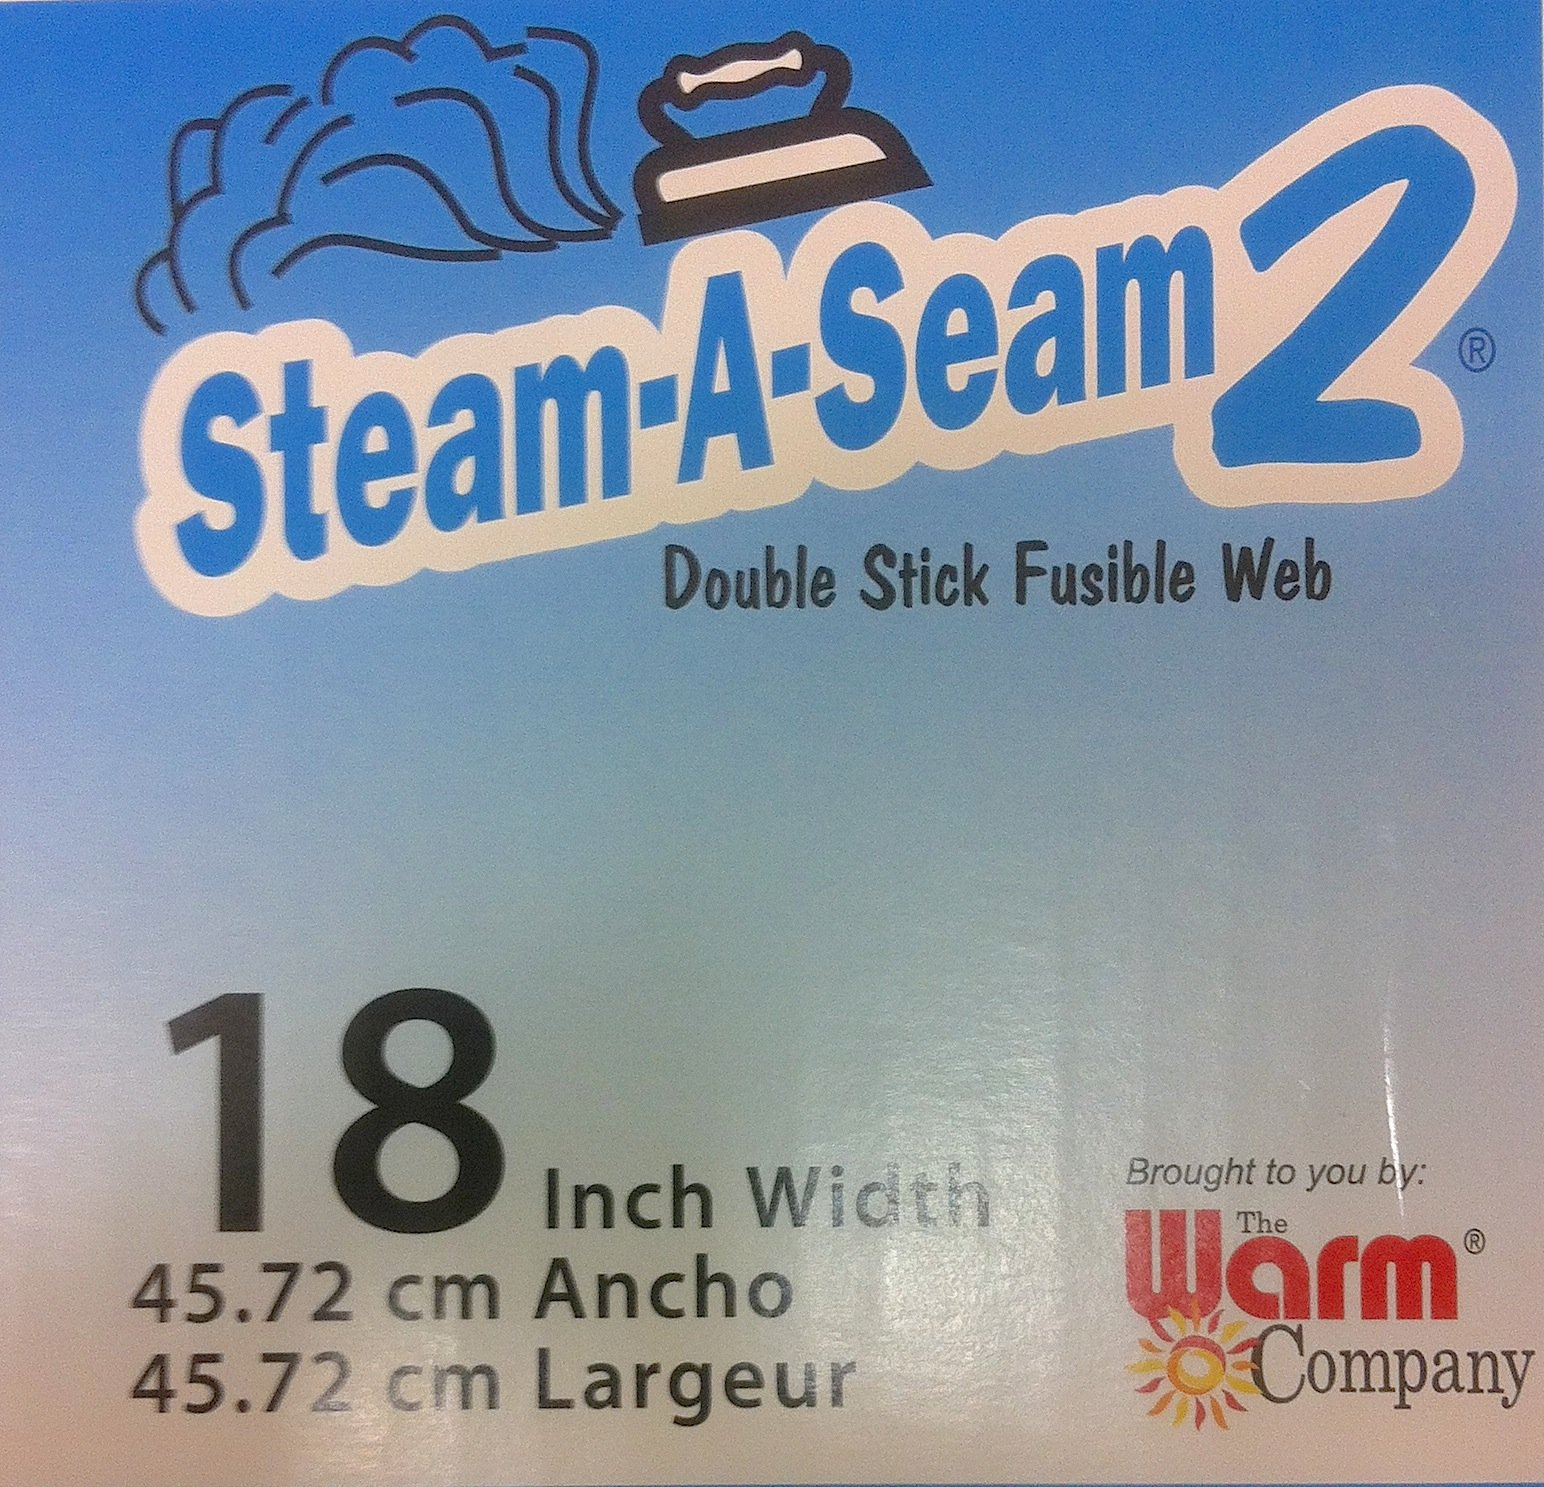 steam-a-seam2 roll